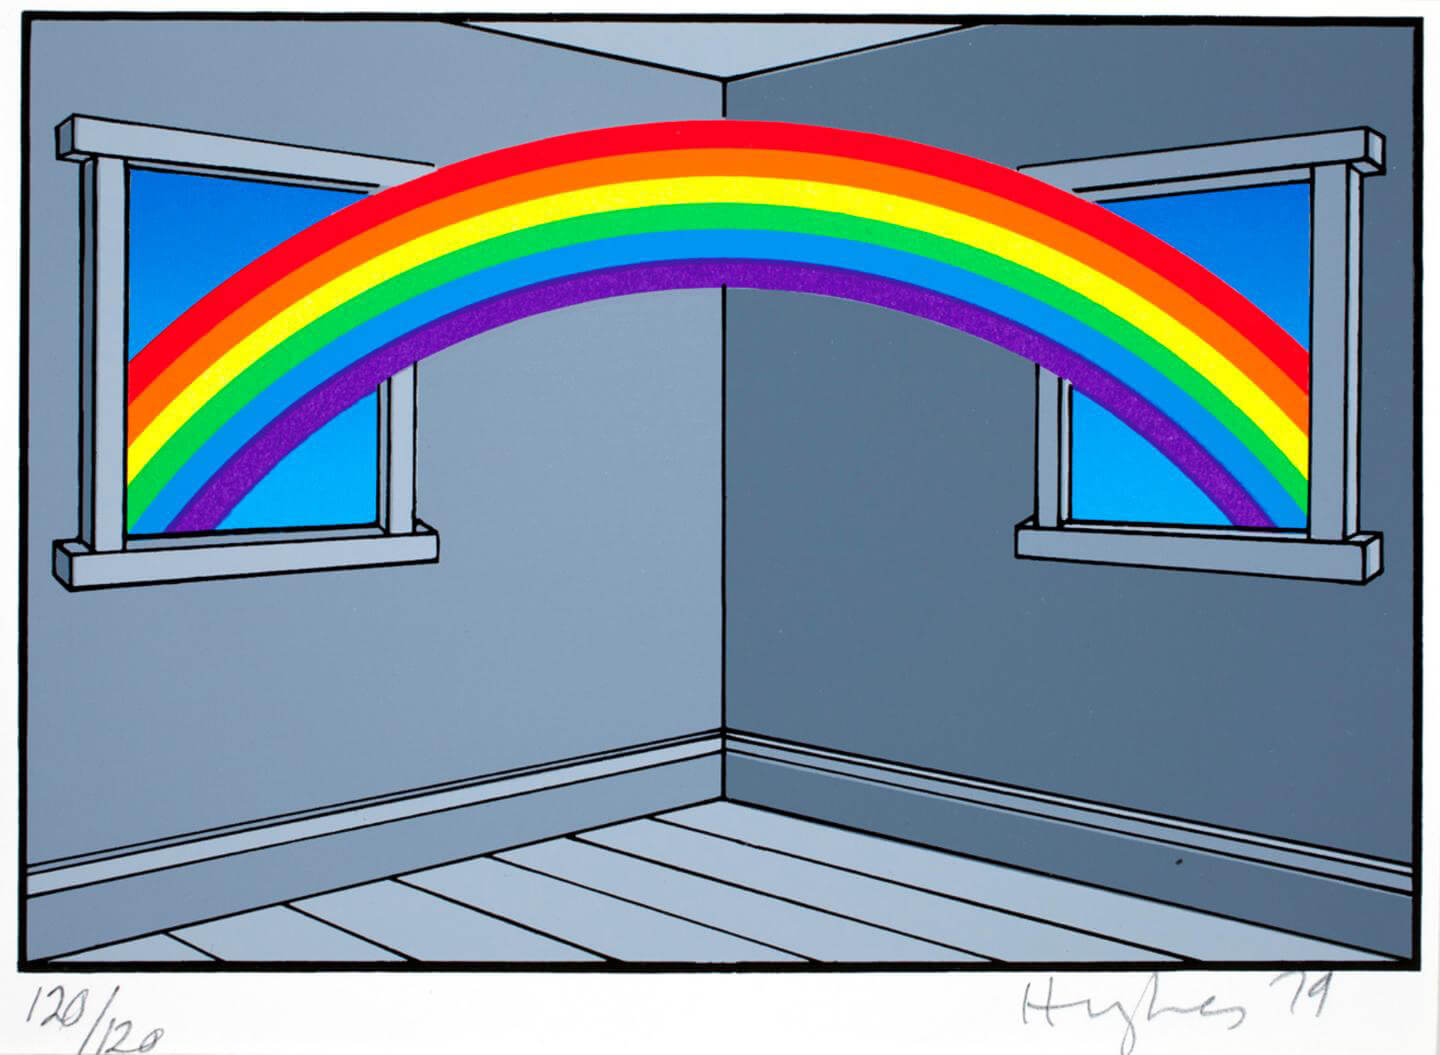 The Domestic Life of the Rainbow, screen print on paper, 1979 | Patrick Hughes | STIRworld